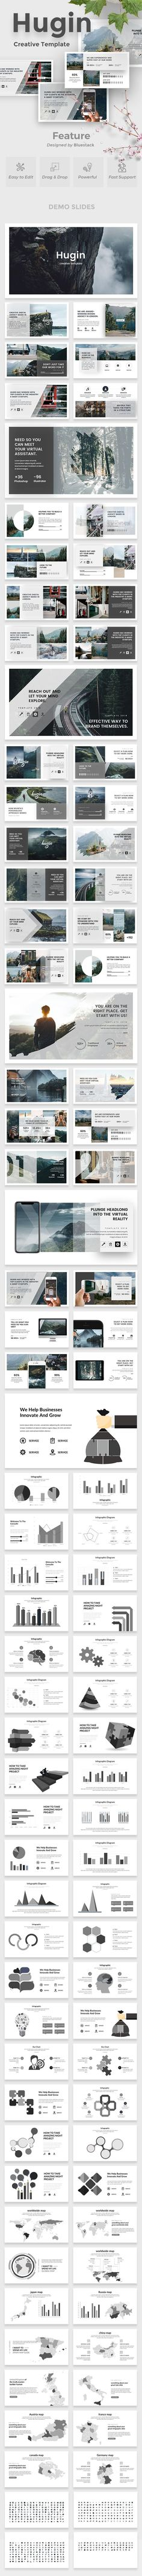 Buy Hugin Creative Powerpoint Template by bluestack on GraphicRiver. Features: Aspect Ratio no more broken images! Easy and fully editable in PowerPoint (shape color, size, position. Slide Template, Layout Template, Keynote Template, Web Design, Page Design, Graphic Design, Layout Design, Creative Design, Presentation Design